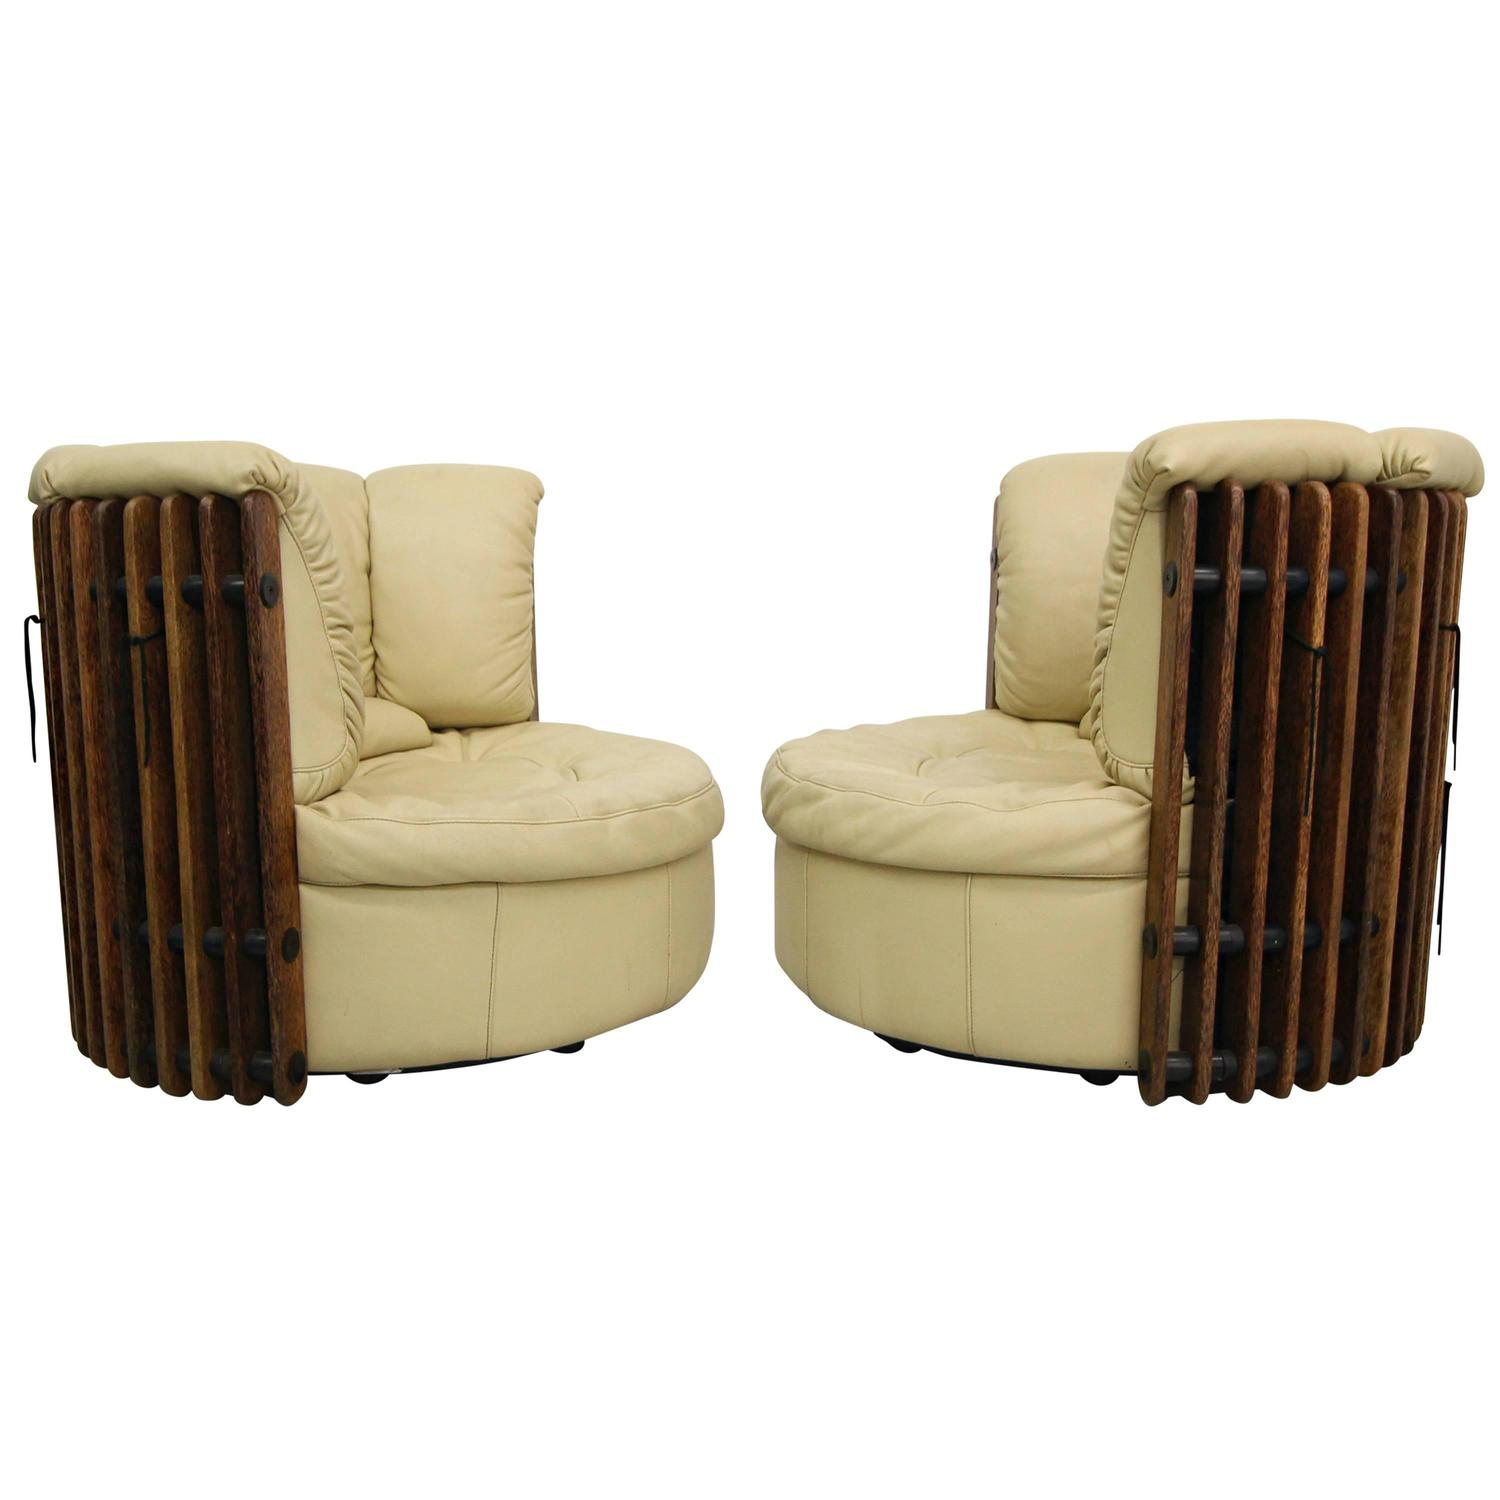 isle of palms beach chair company indoor swing chairs ireland pair pacific green d 39palm palm wood and leather